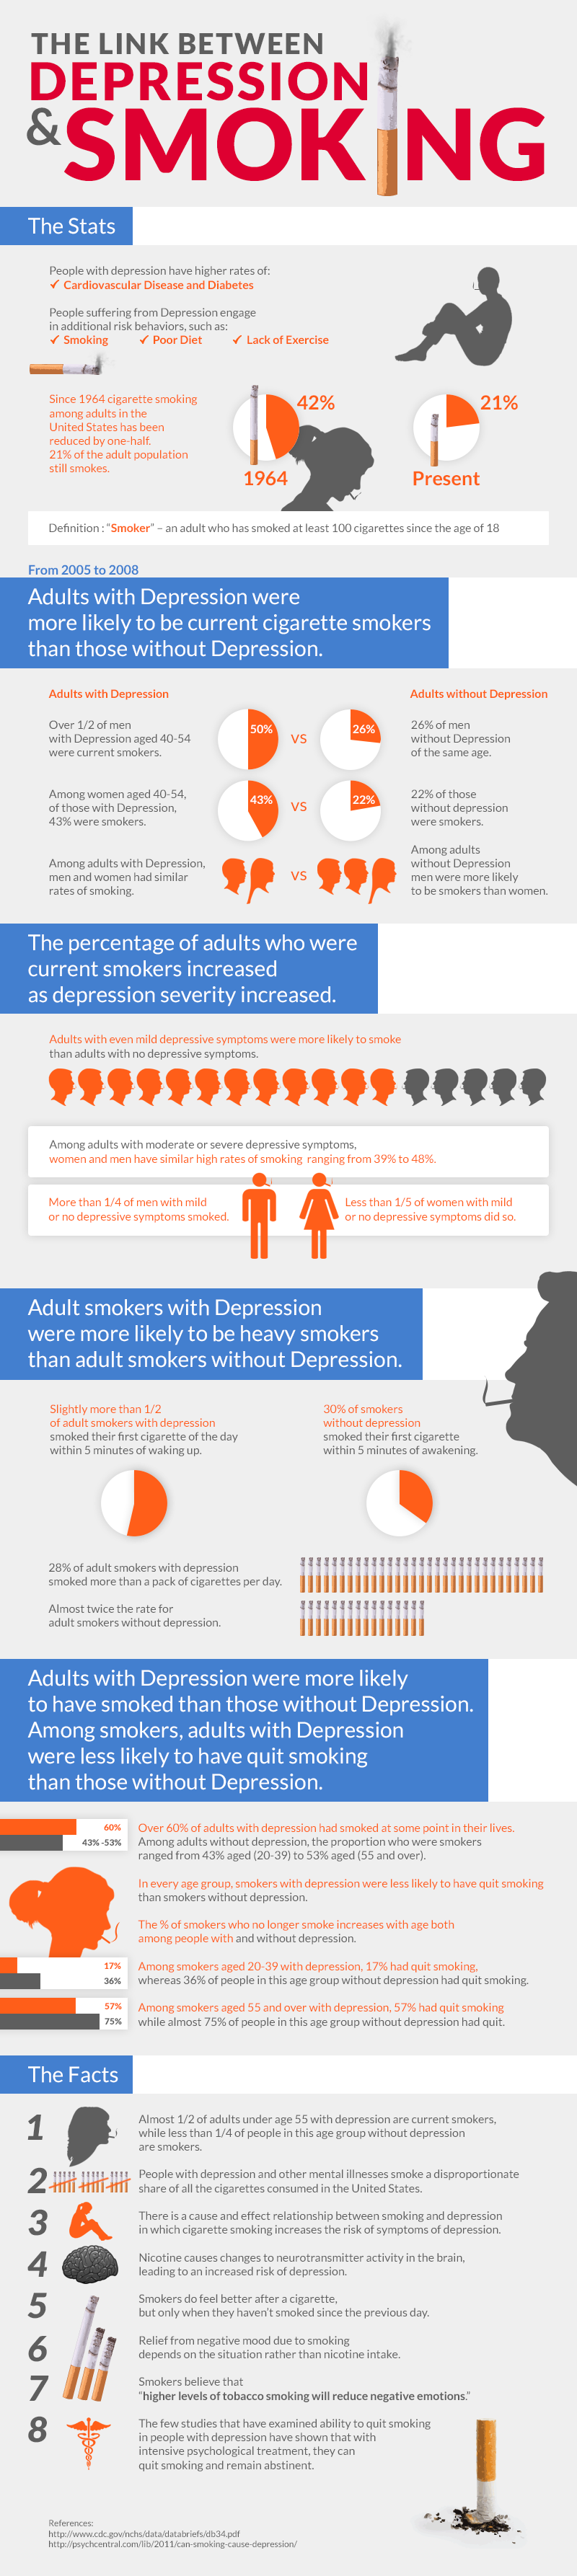 The Link Between Smoking & Depression